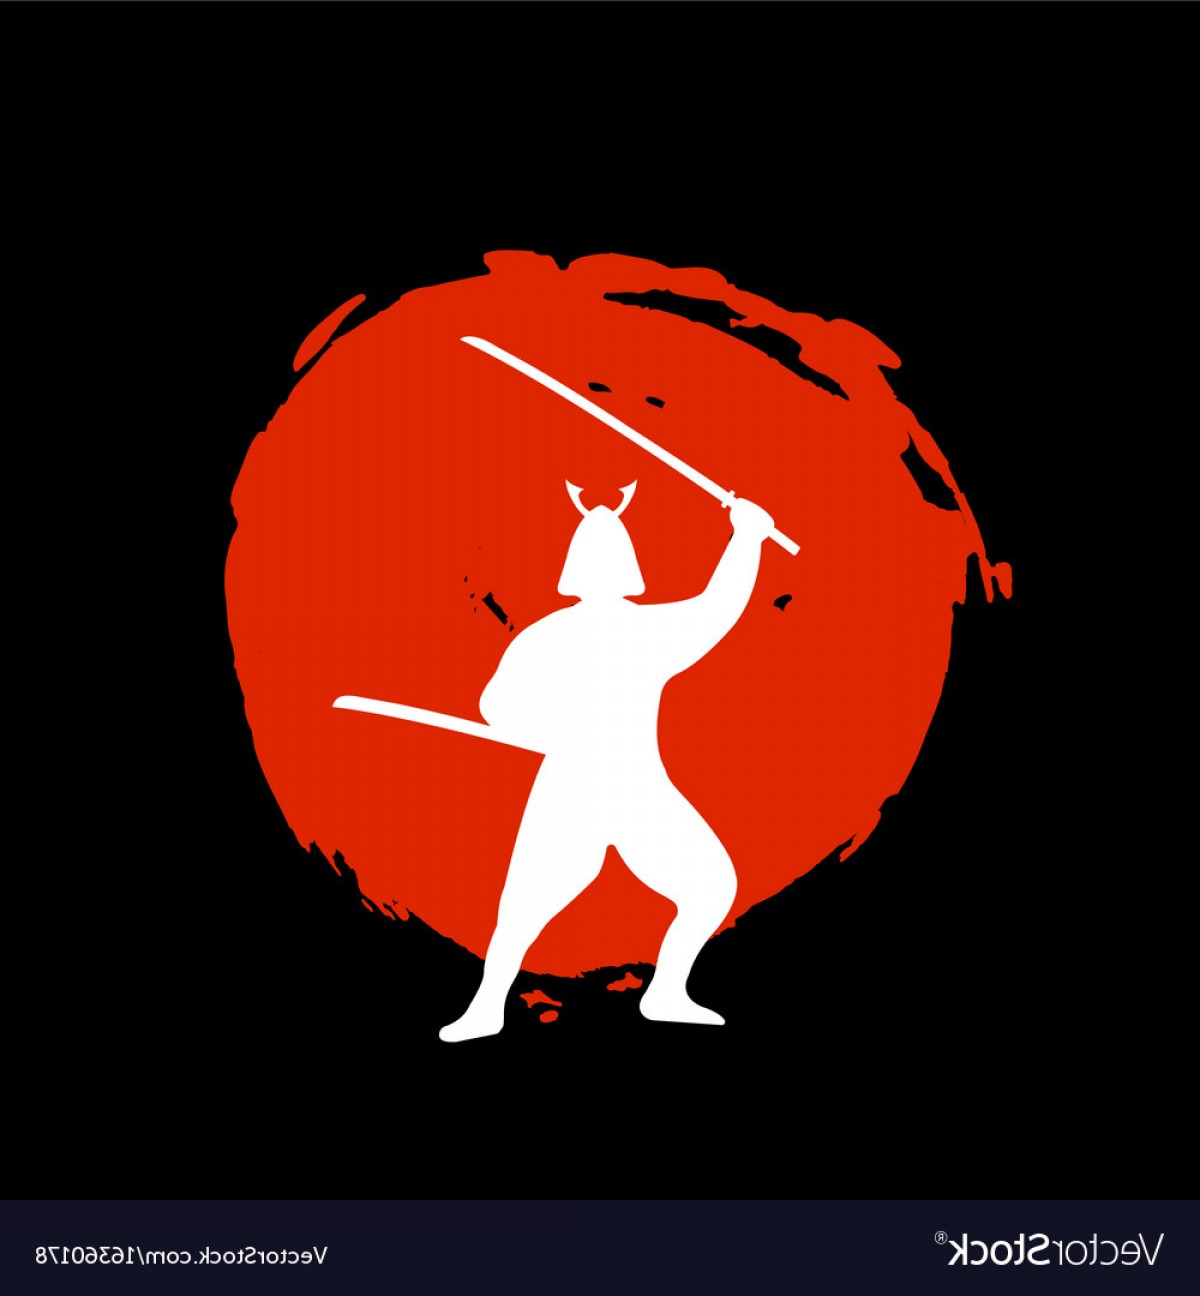 Red Samurai Vector: Samurai Warrior Silhouette On Red Moon And Black Vector